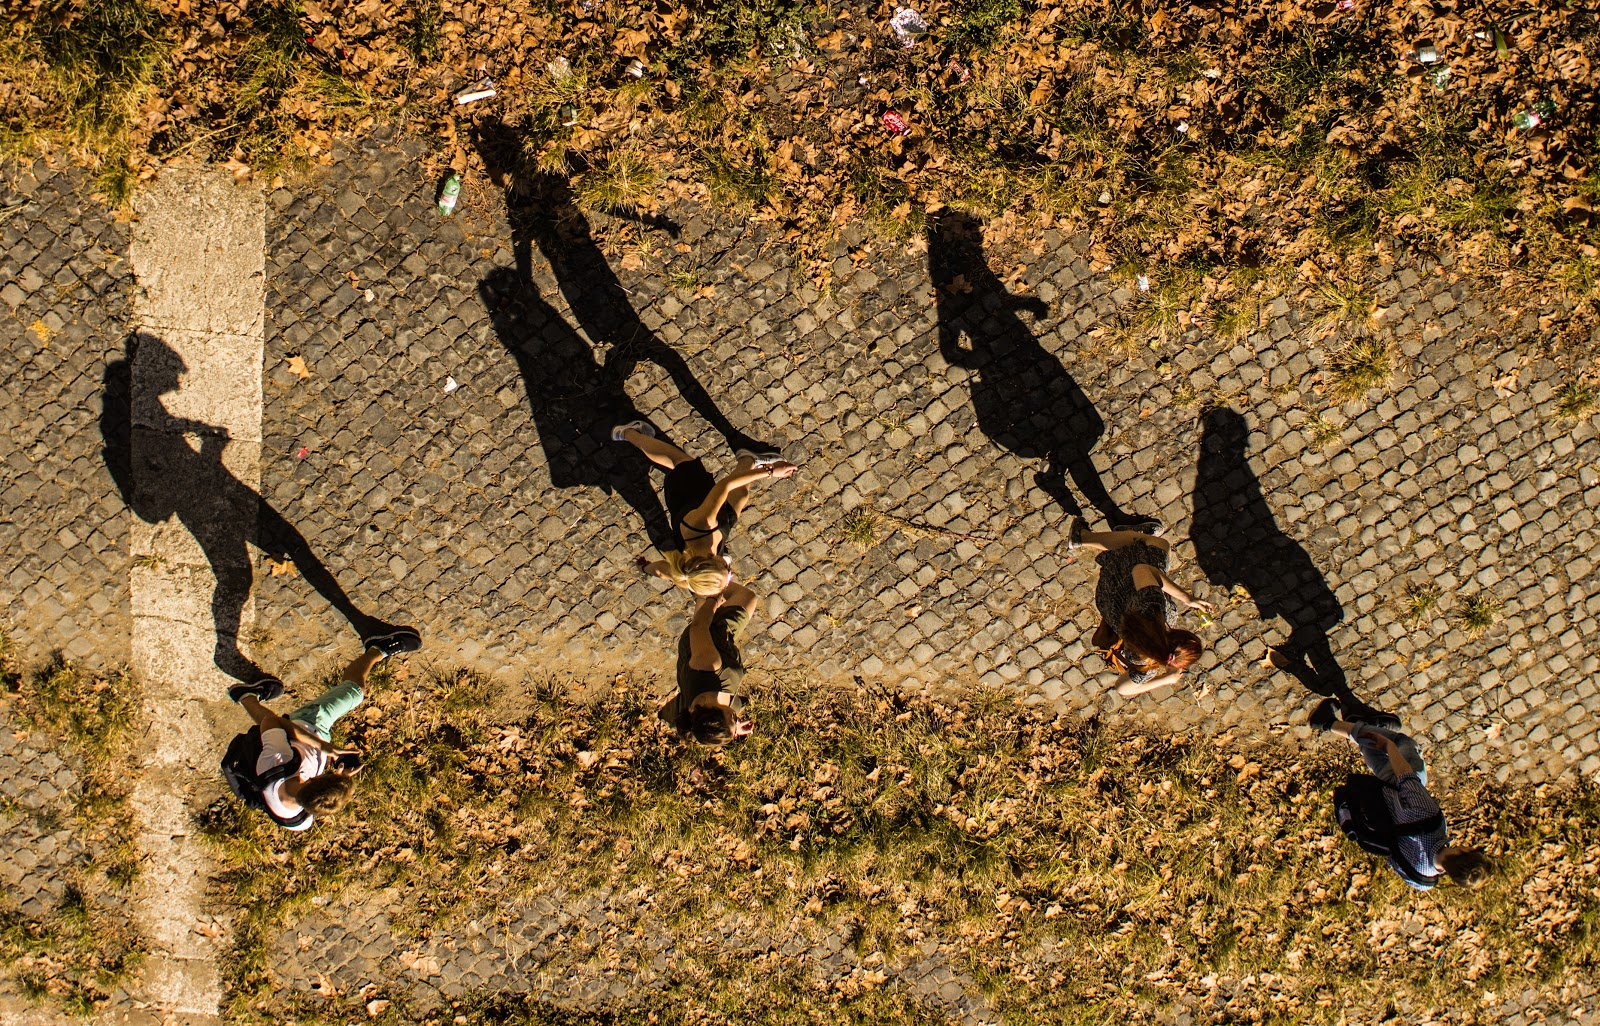 People on a walk with a focus on their shadows across the sidewalk